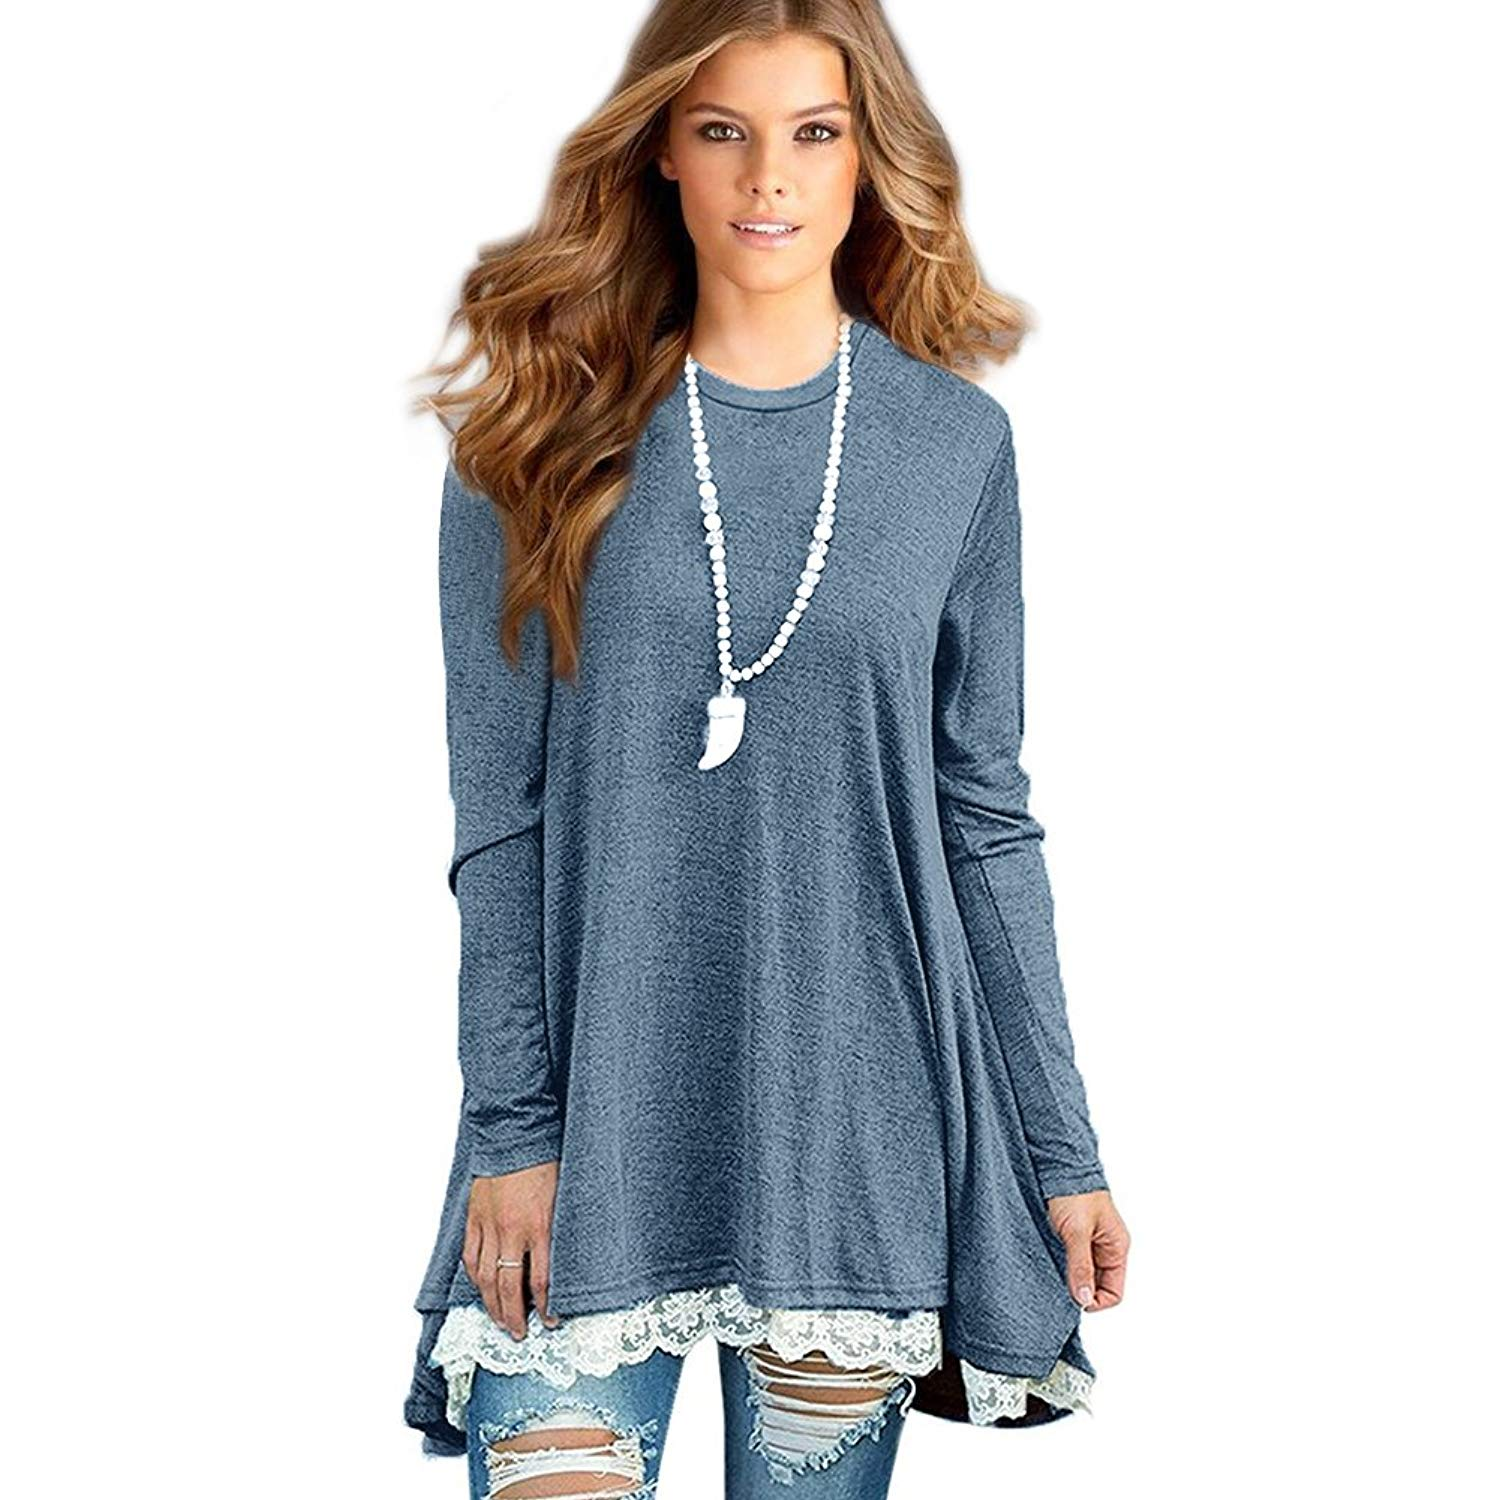 4463536003f Get Quotations · Sunfung Women's Lace Long Sleeve Tunic Tops Shirt Clothing  Scoop Neck Womens Plus Size Tunic Blouses